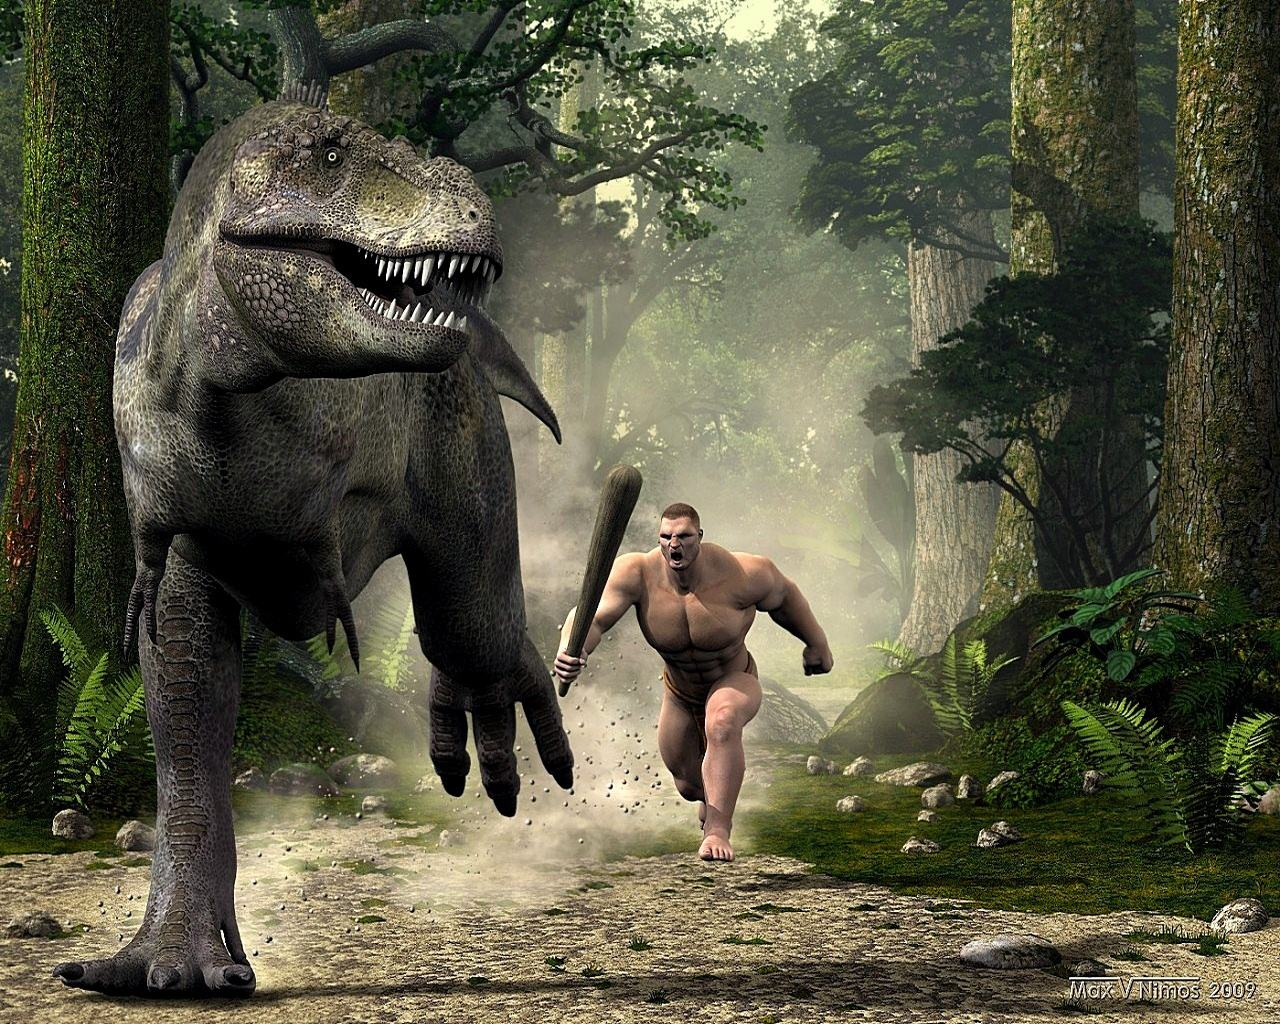 Wallpapers Backgrounds   Picture hunt dinosaur cool pictures Tuning 1280x1024